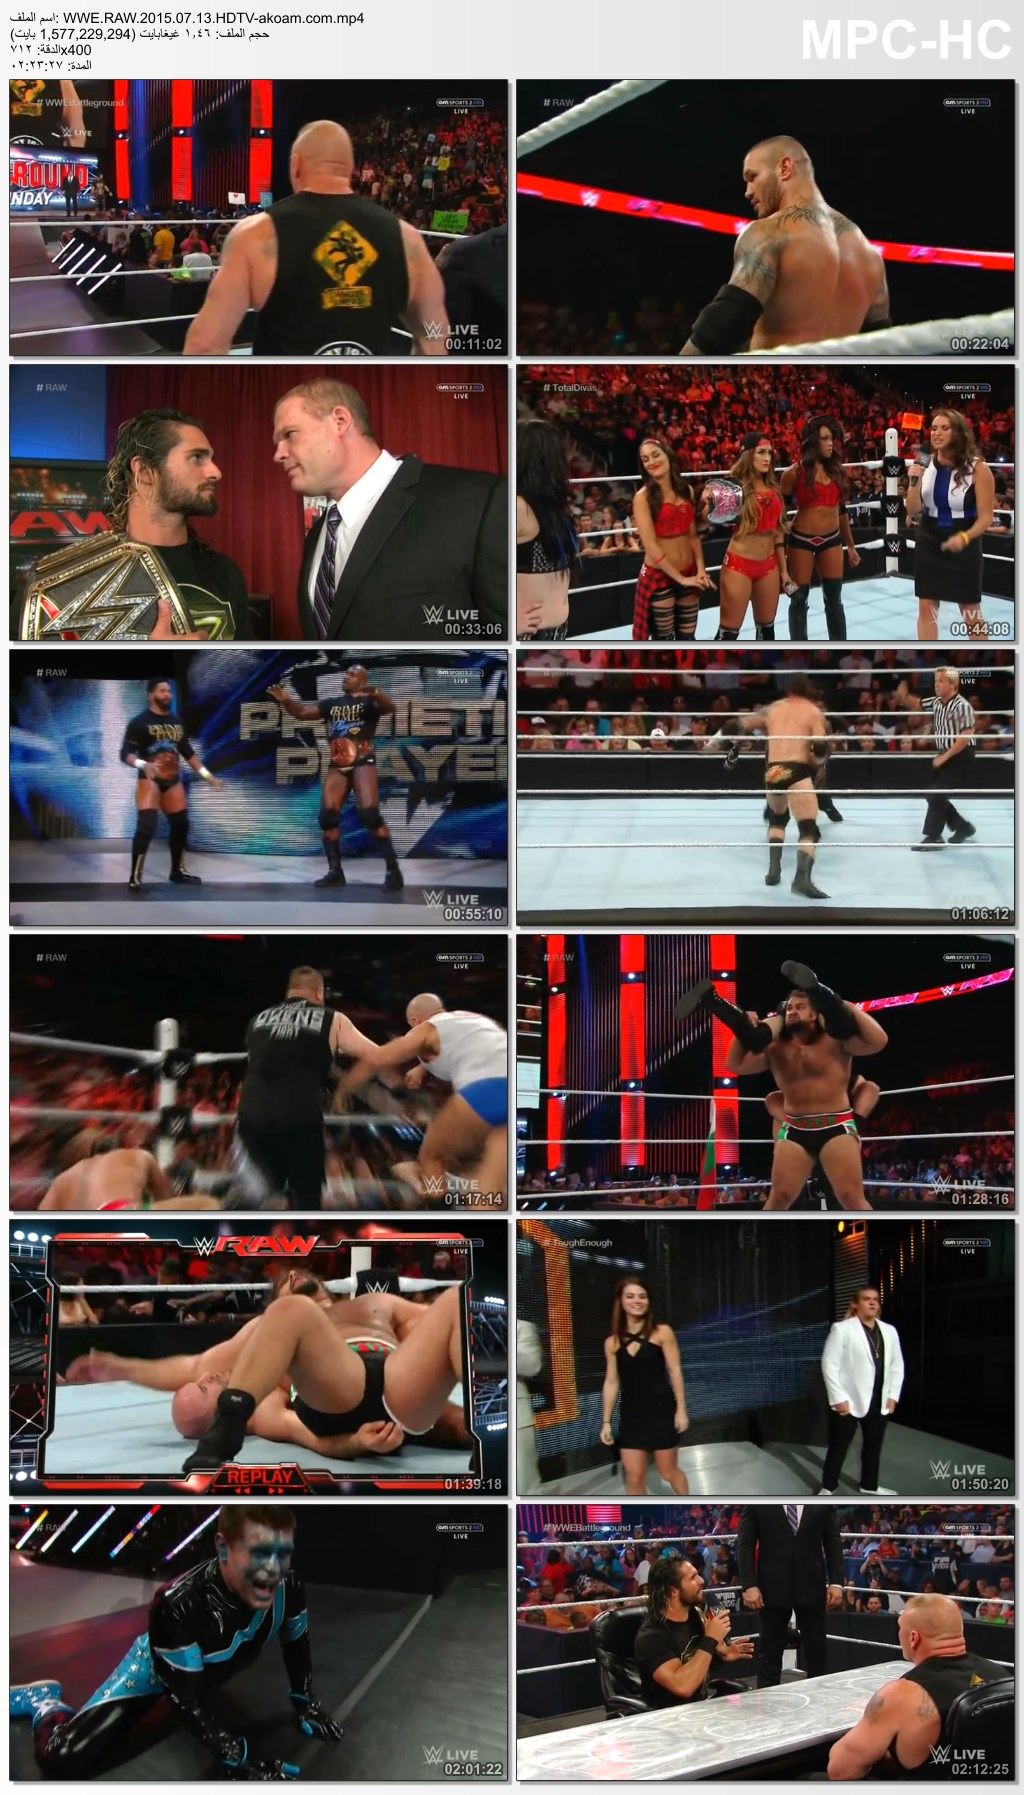 WWE,RAW,WWE Monday Night Raw 2015.07.13,WWE Monday Night Raw